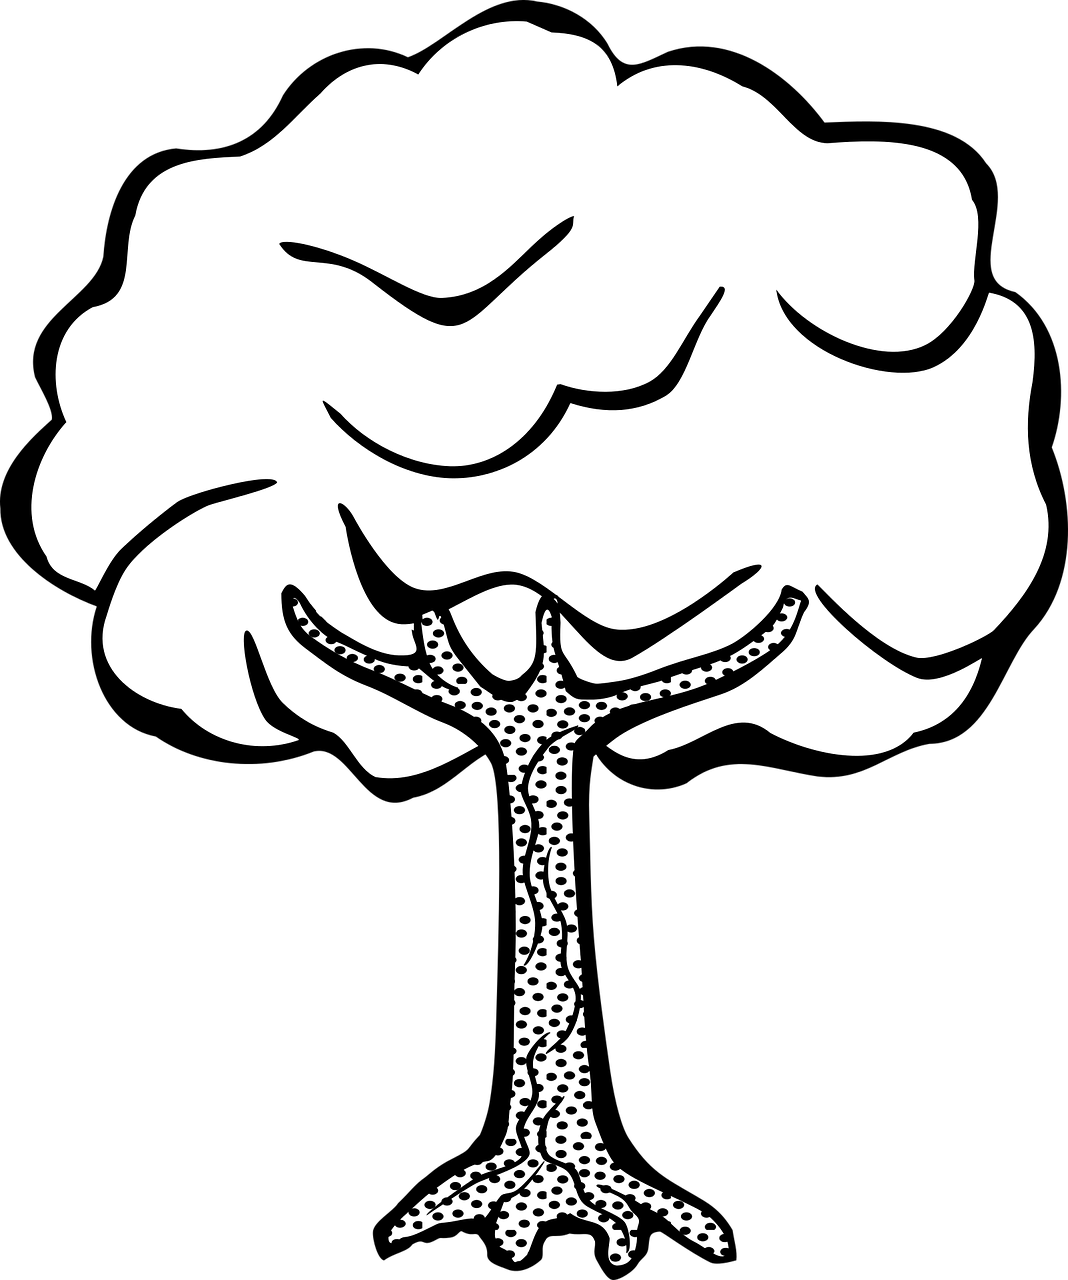 Free Printable Tree Coloring Pages For Kids 14 Pics